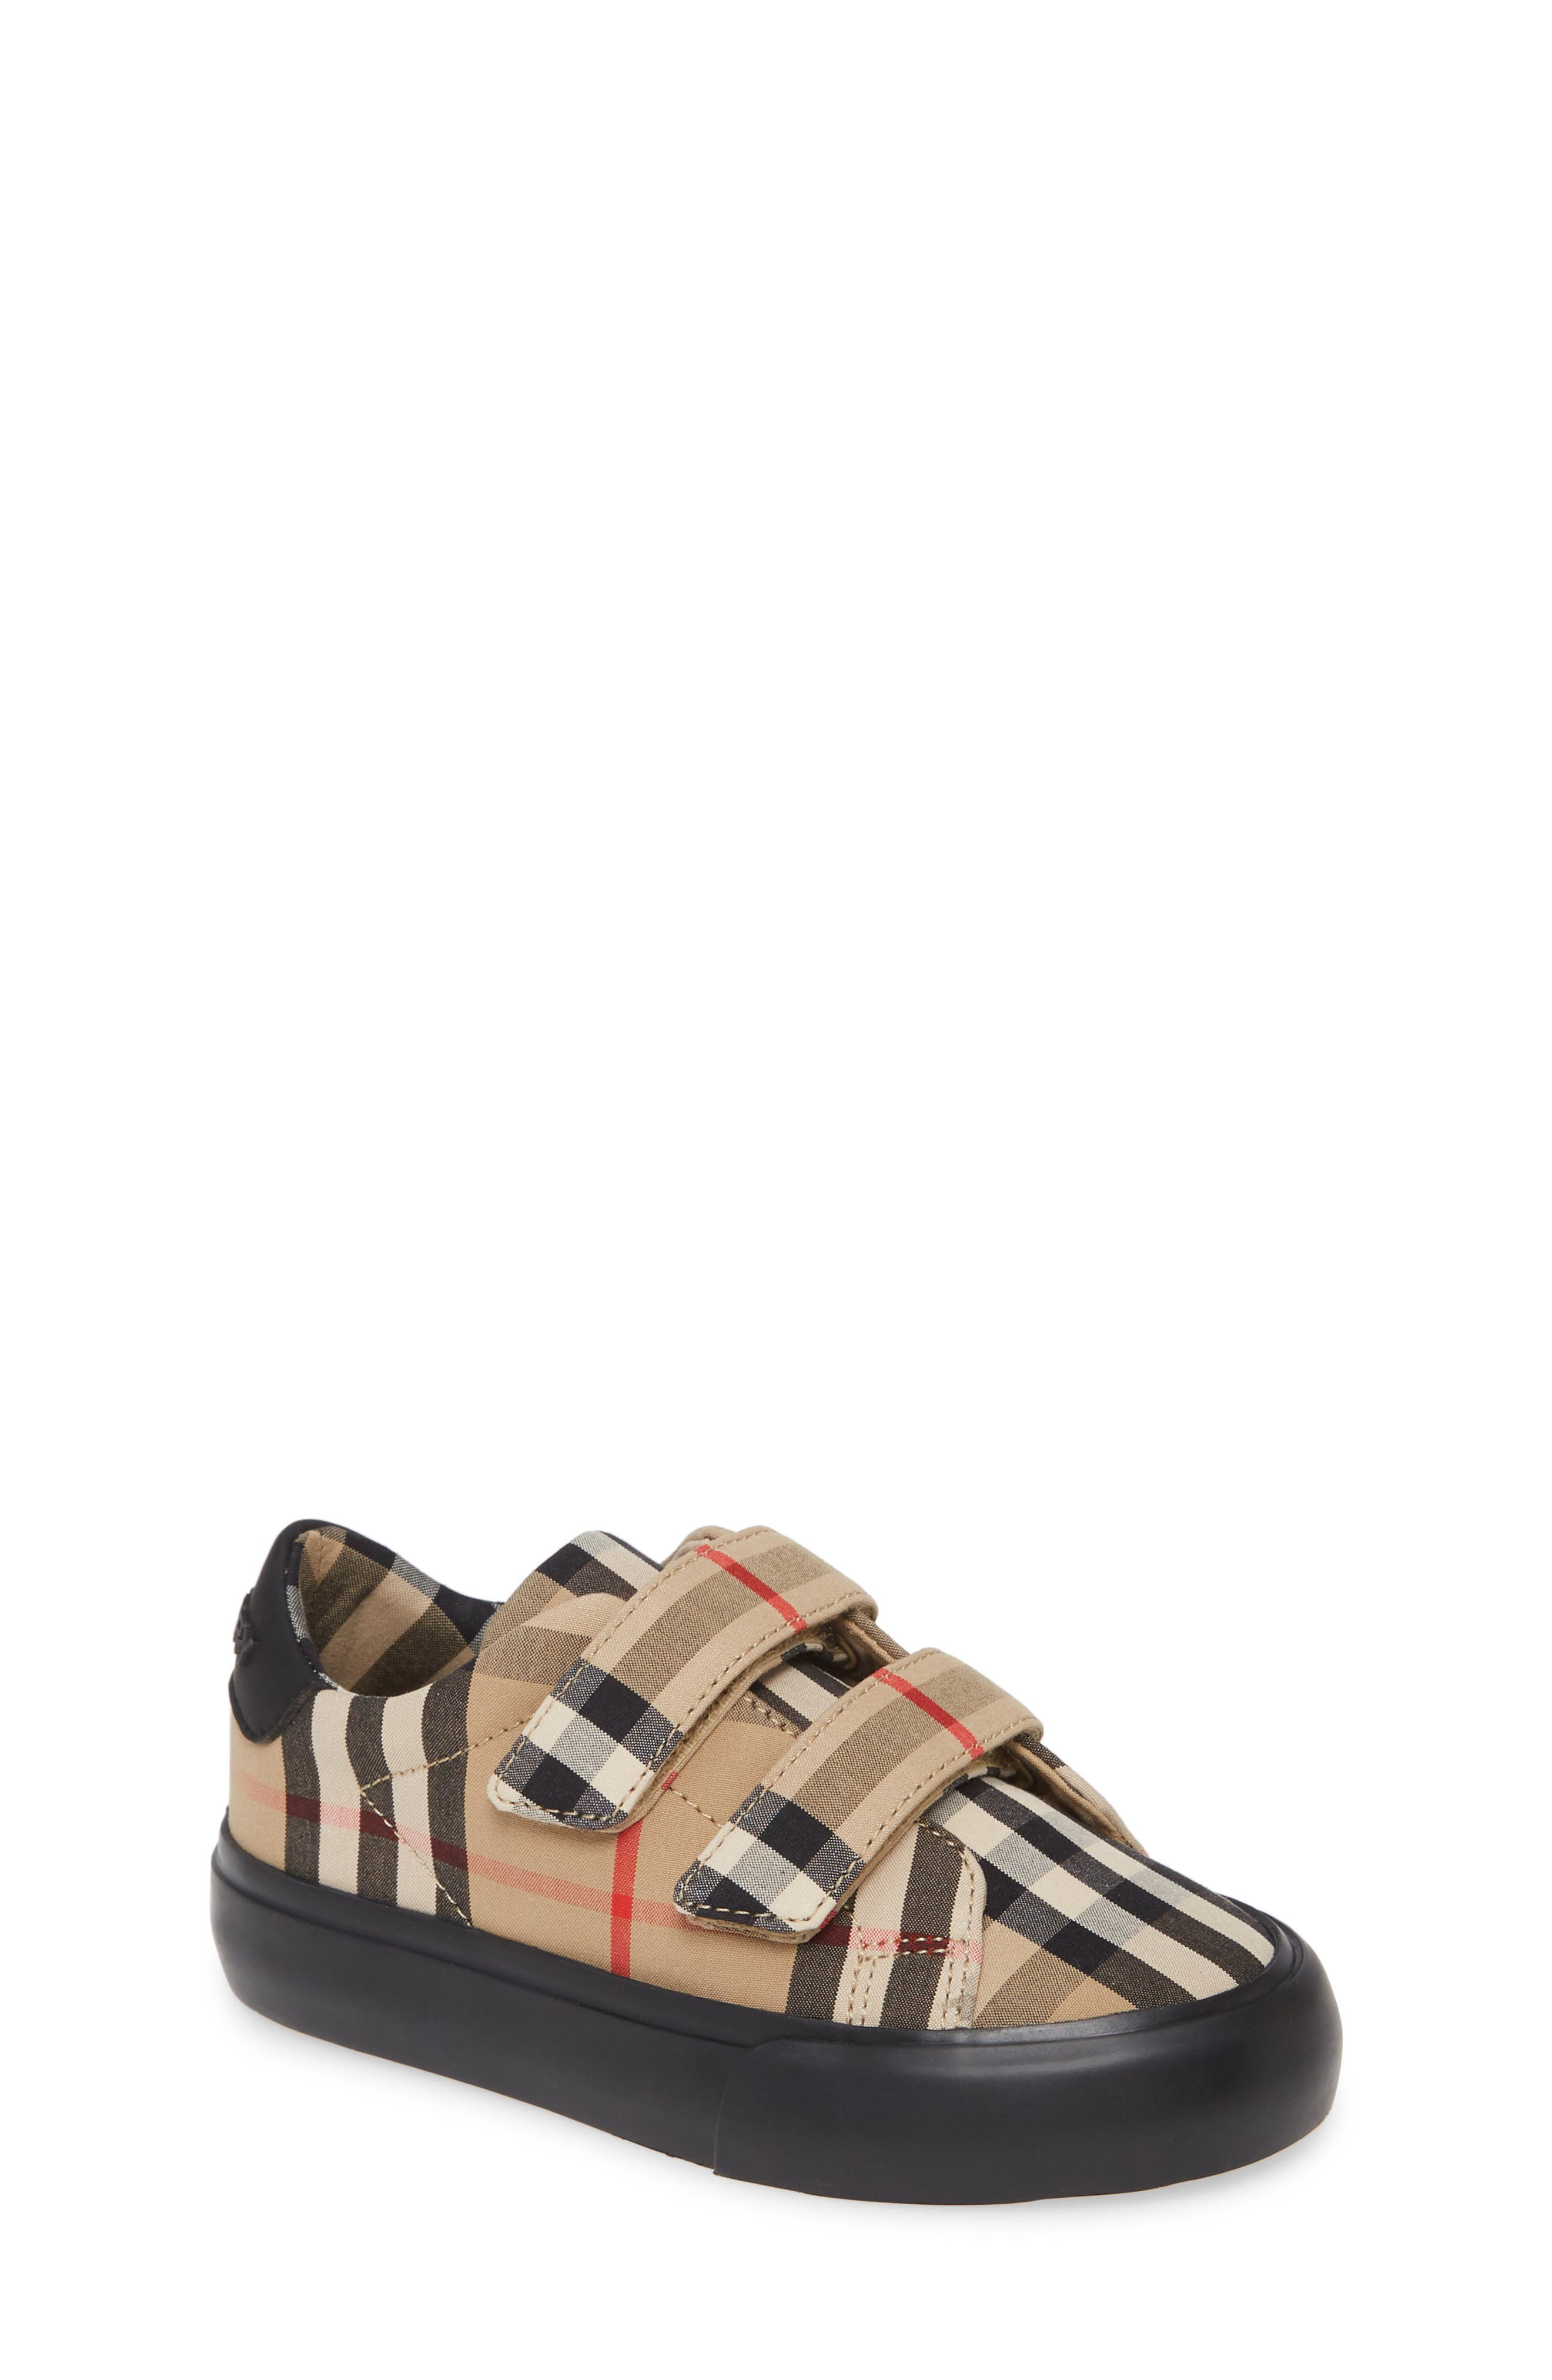 Kids' Burberry Shoes | Nordstrom